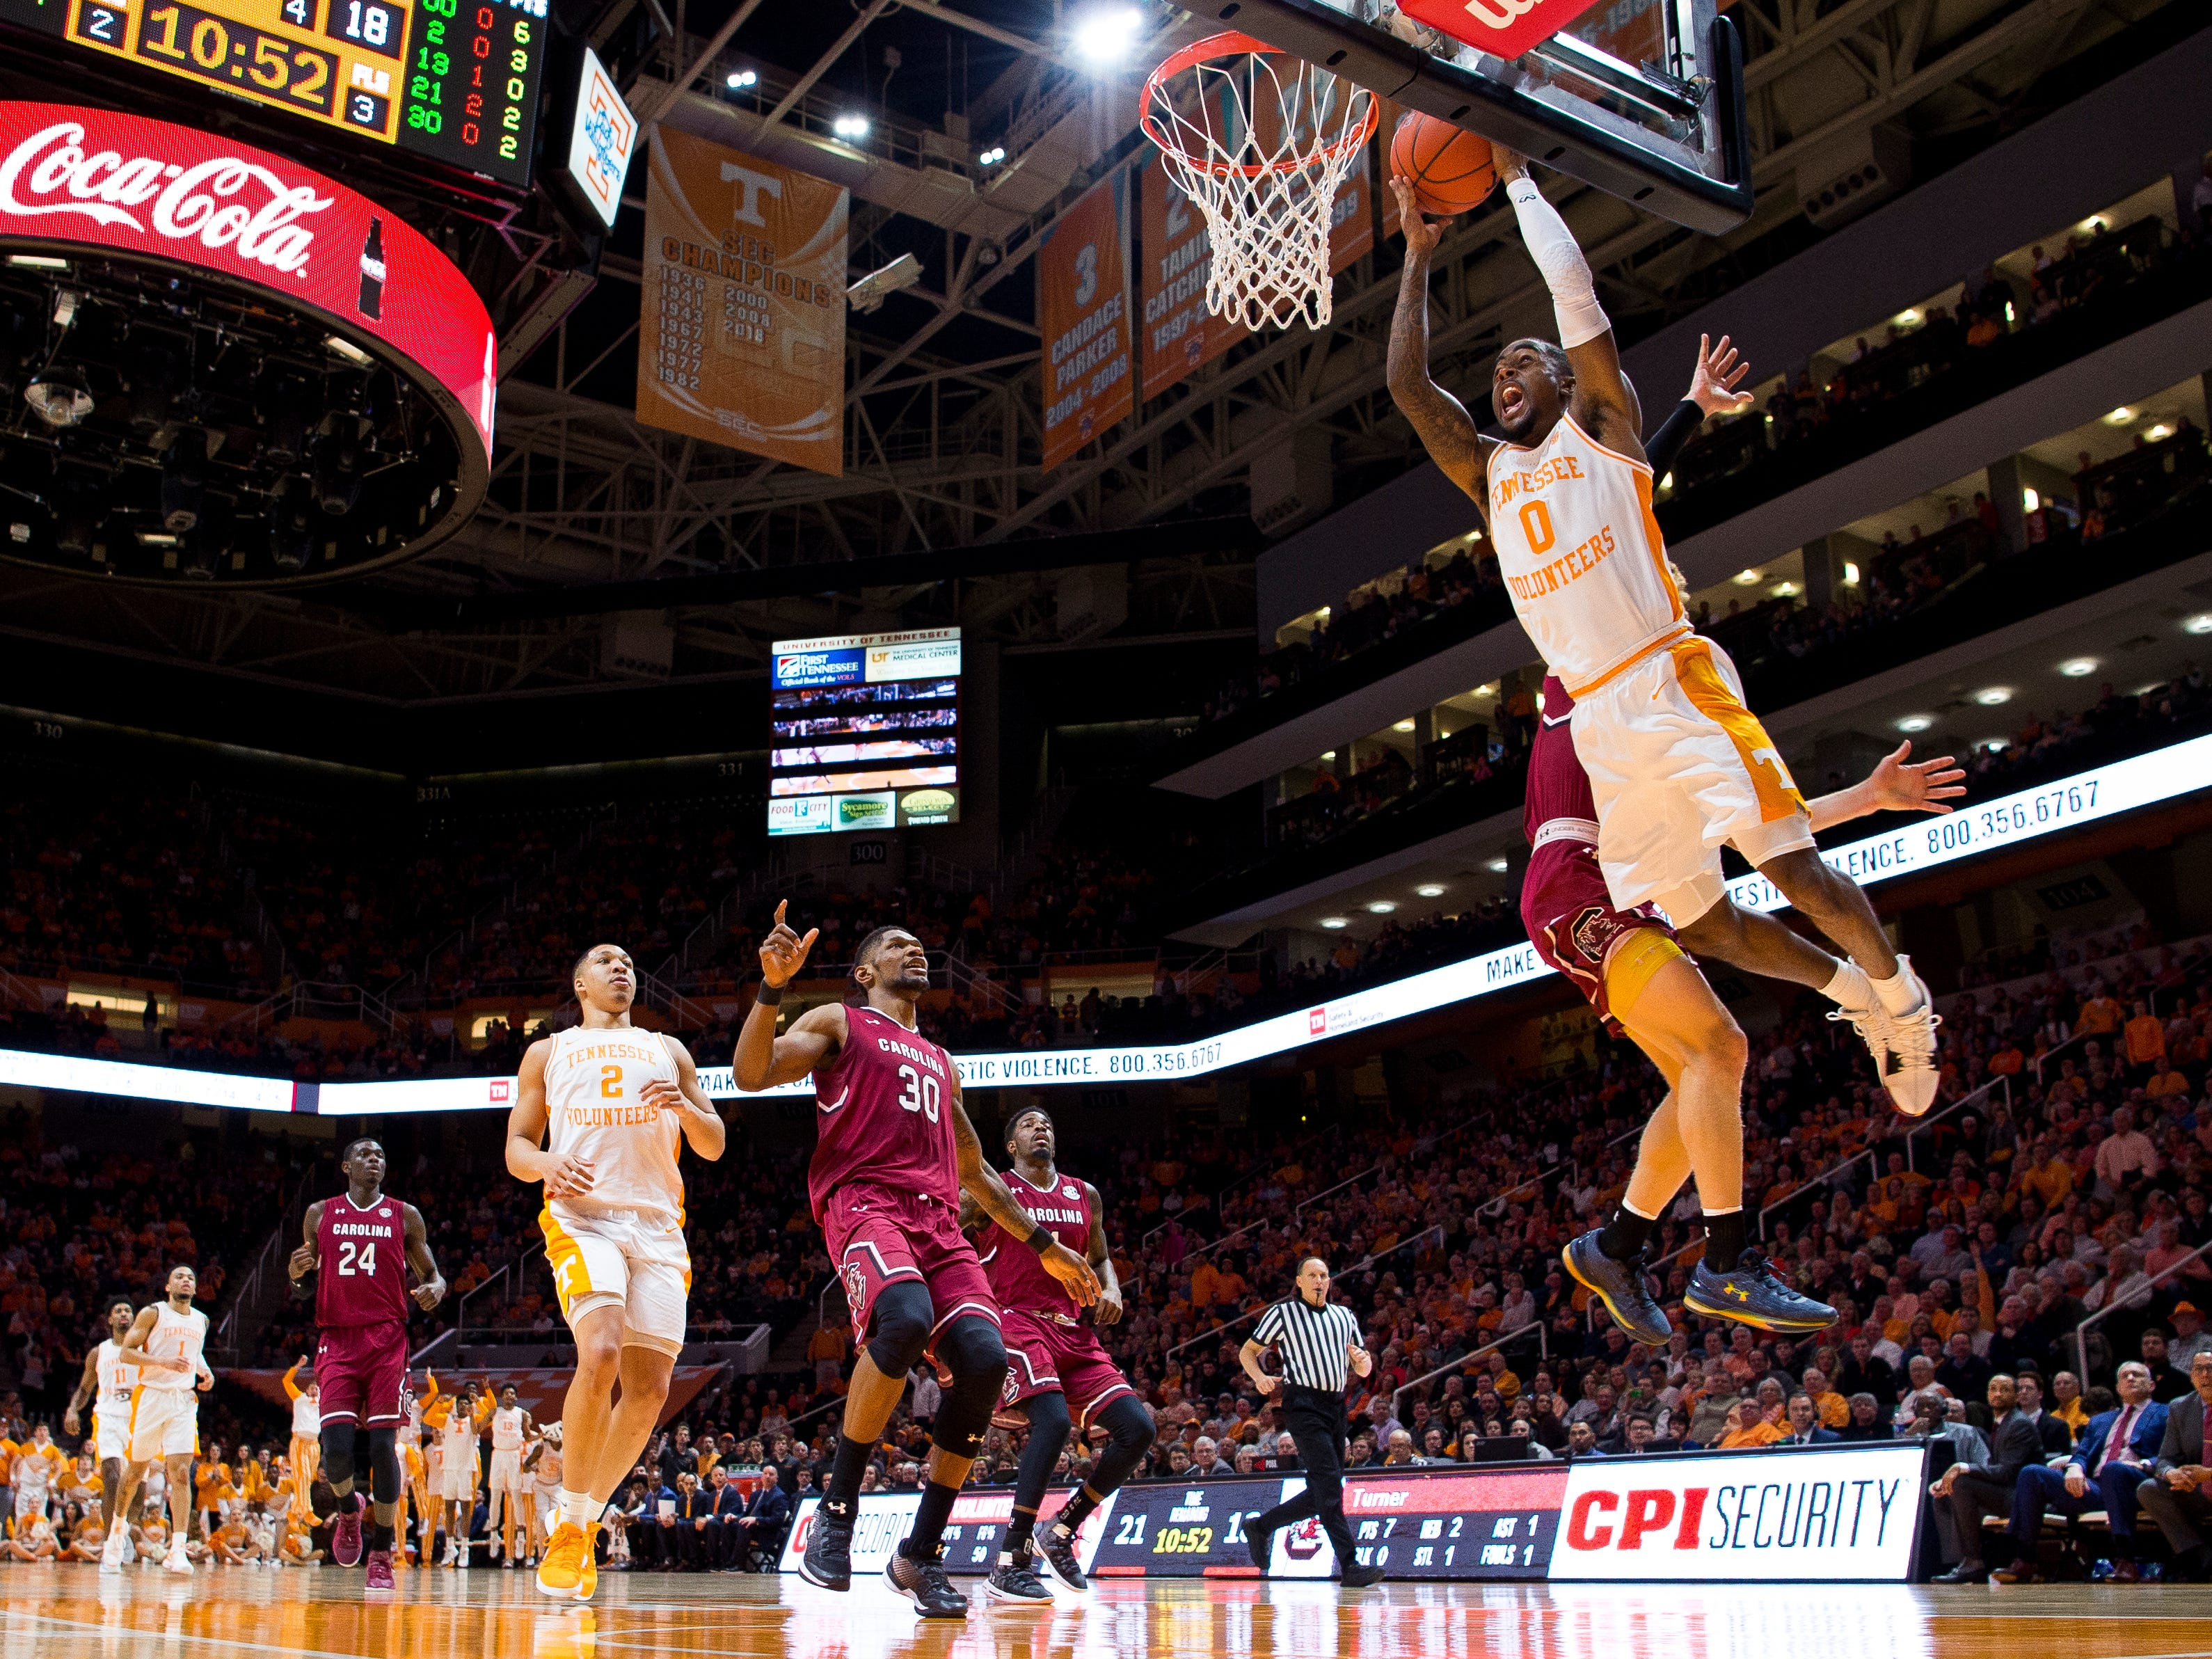 Tennessee guard Jordan Bone (0) is fouled and pushed out of bounds while attempting a dunk during Tennessee's home SEC game against South Carolina at Thompson-Boling Arena in Knoxville on Wednesday, February 13, 2019.